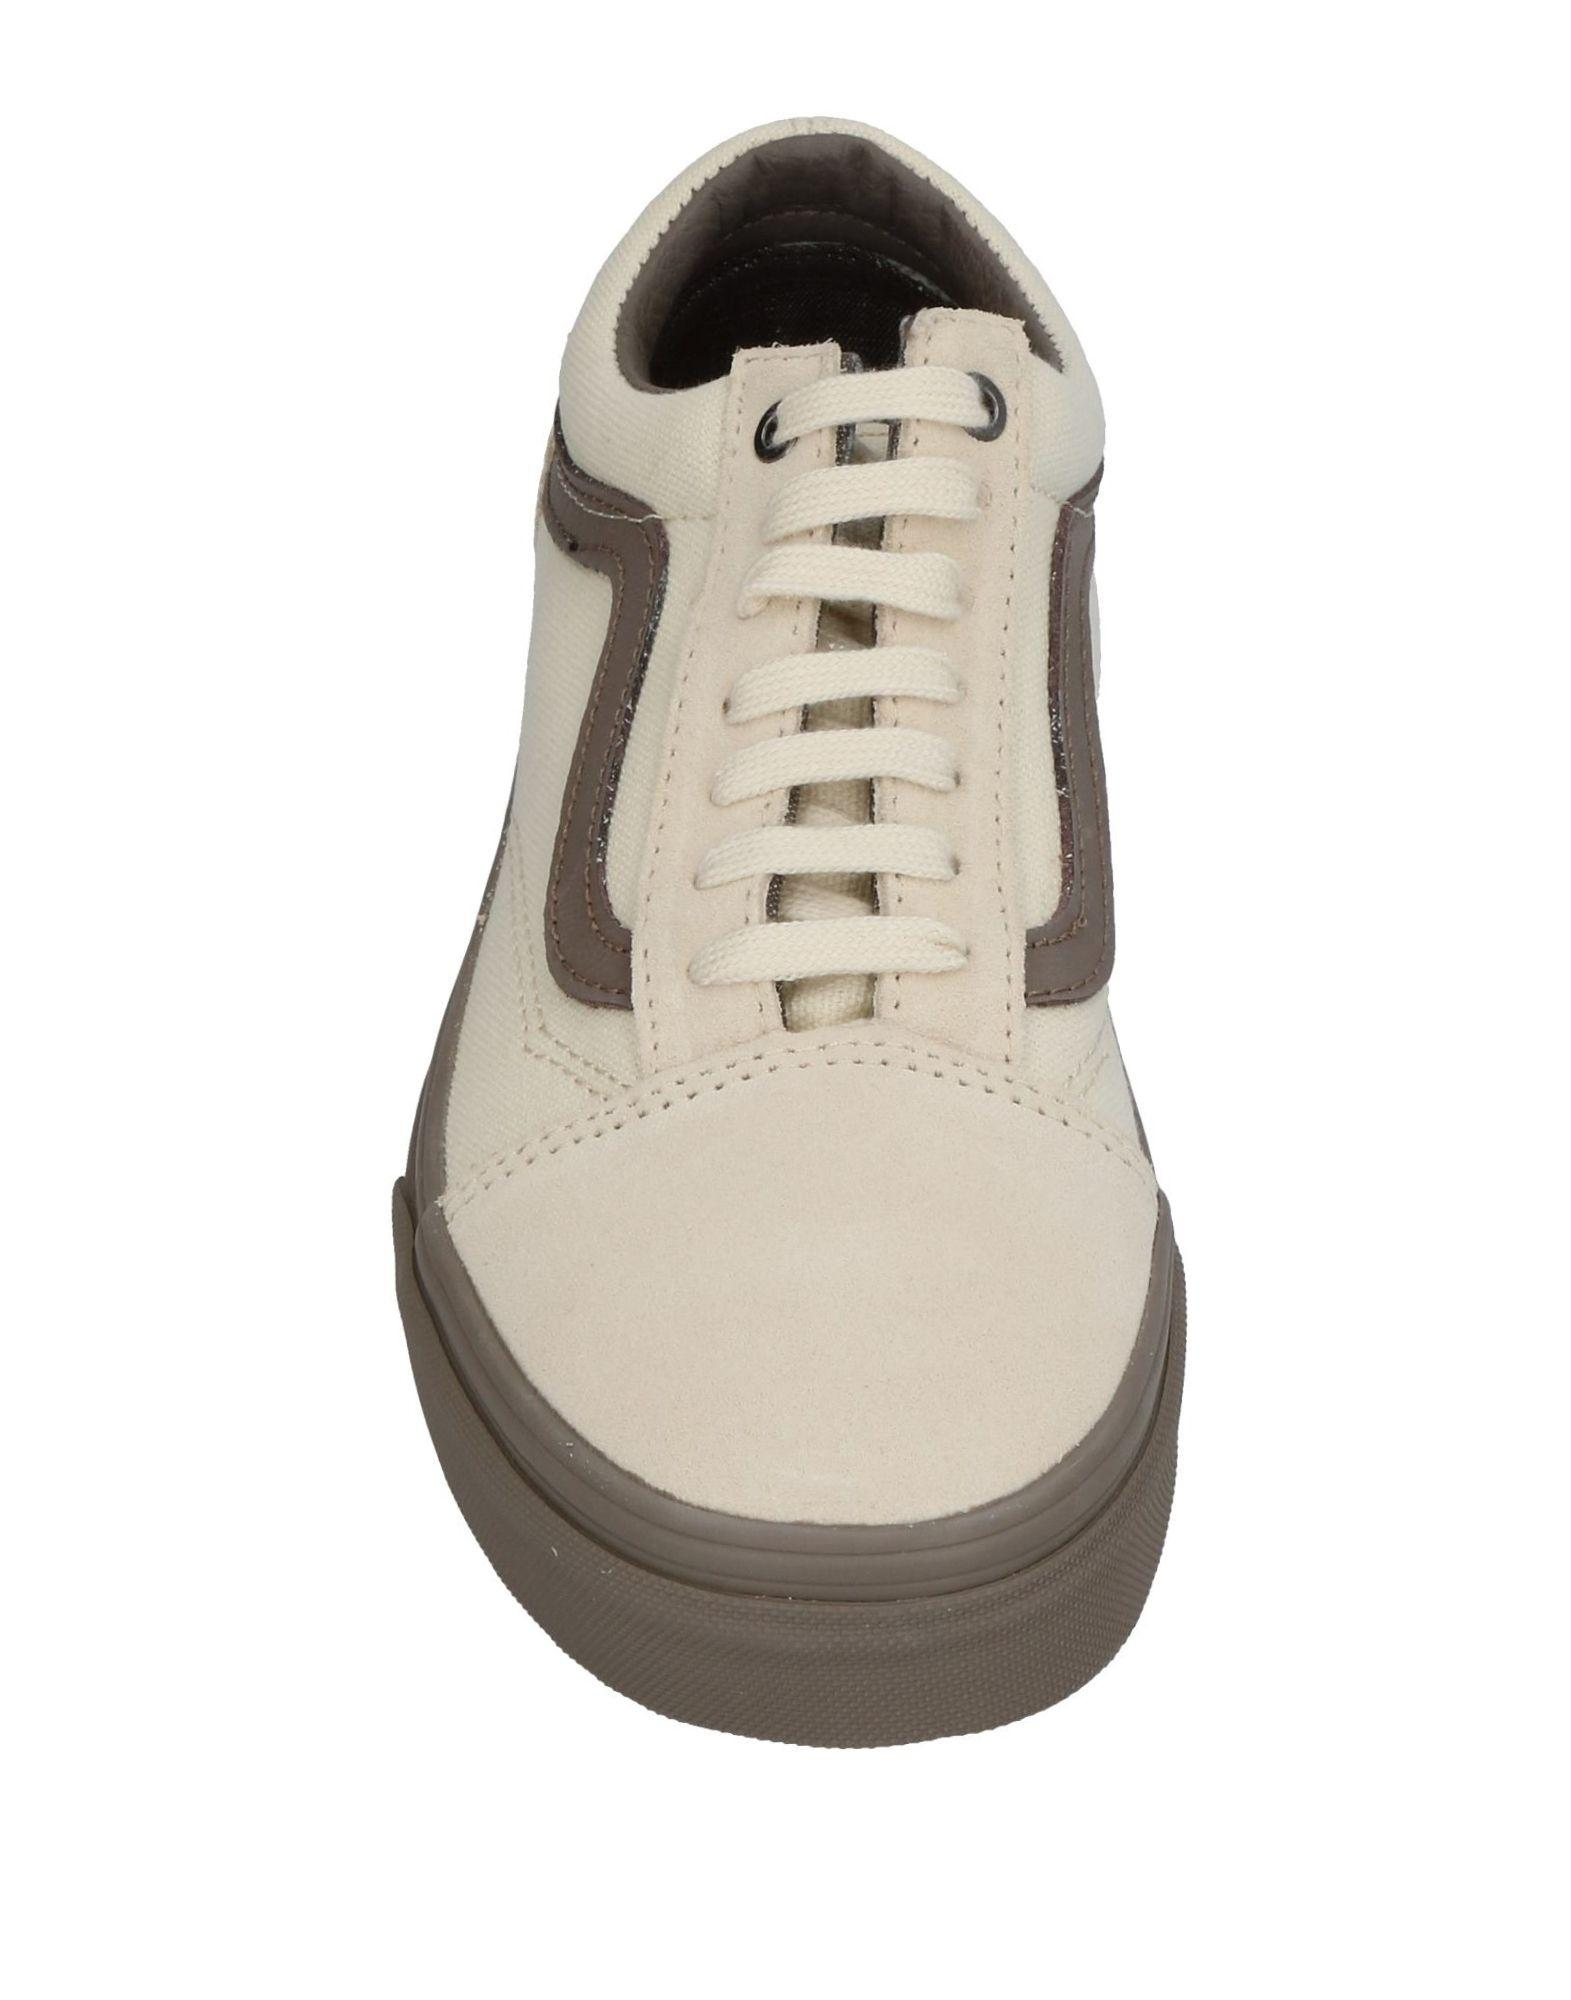 Vans Canvas High-tops & Sneakers in Ivory (White)